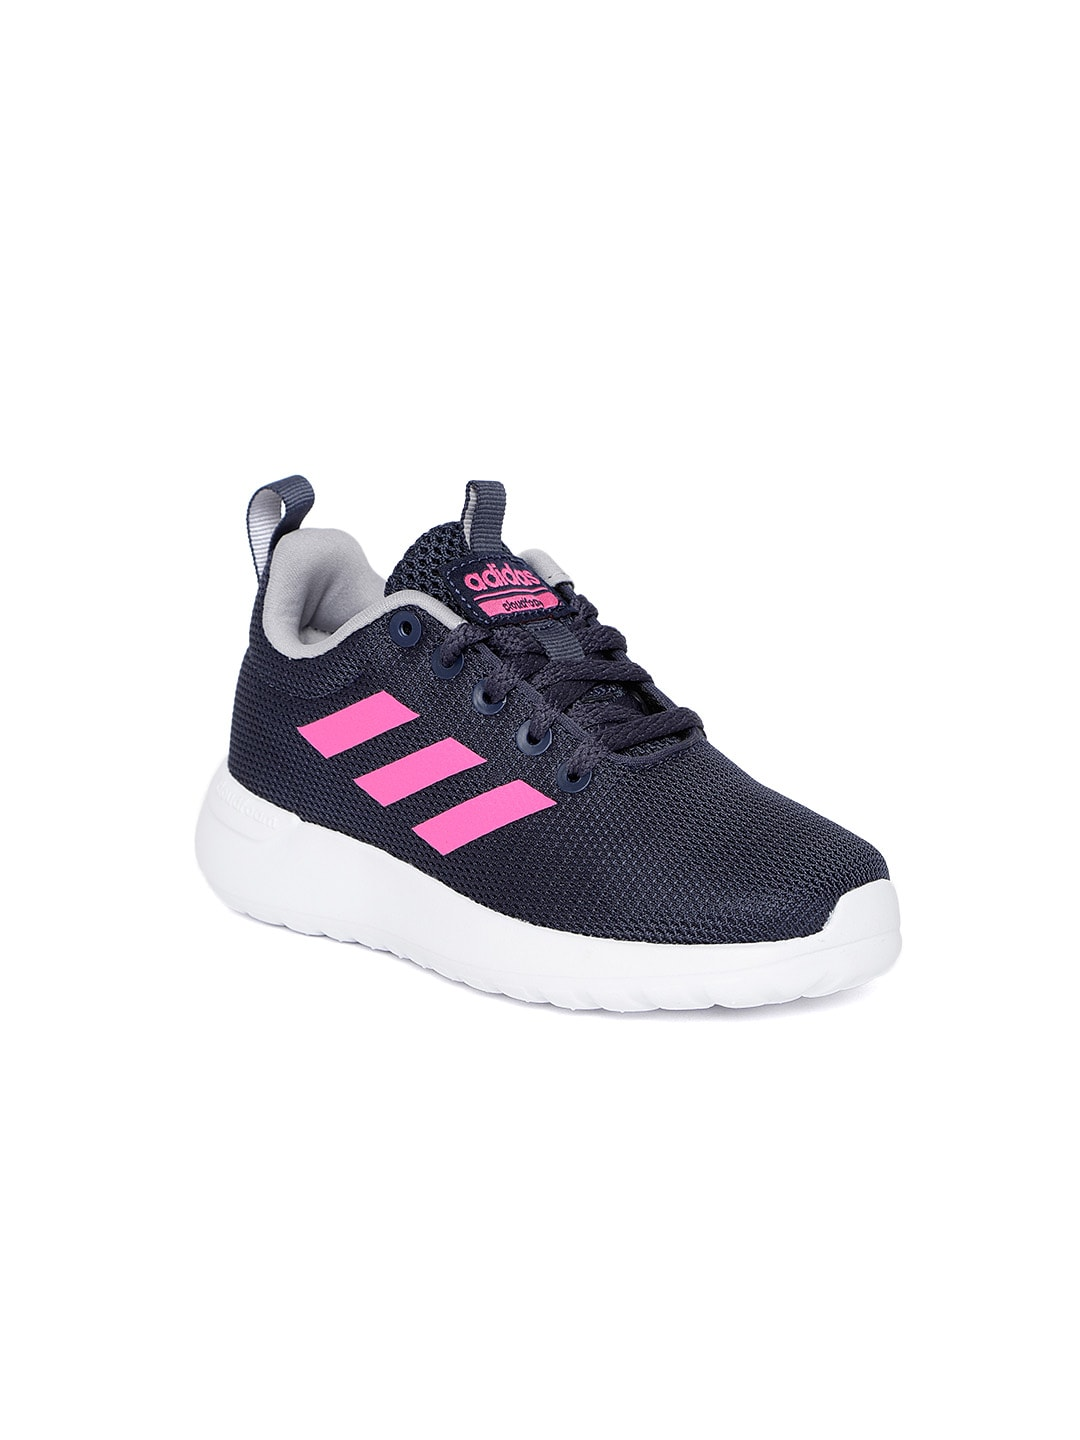 best sneakers 7e284 17bcd Unisex Running Shoes · ADIDAS